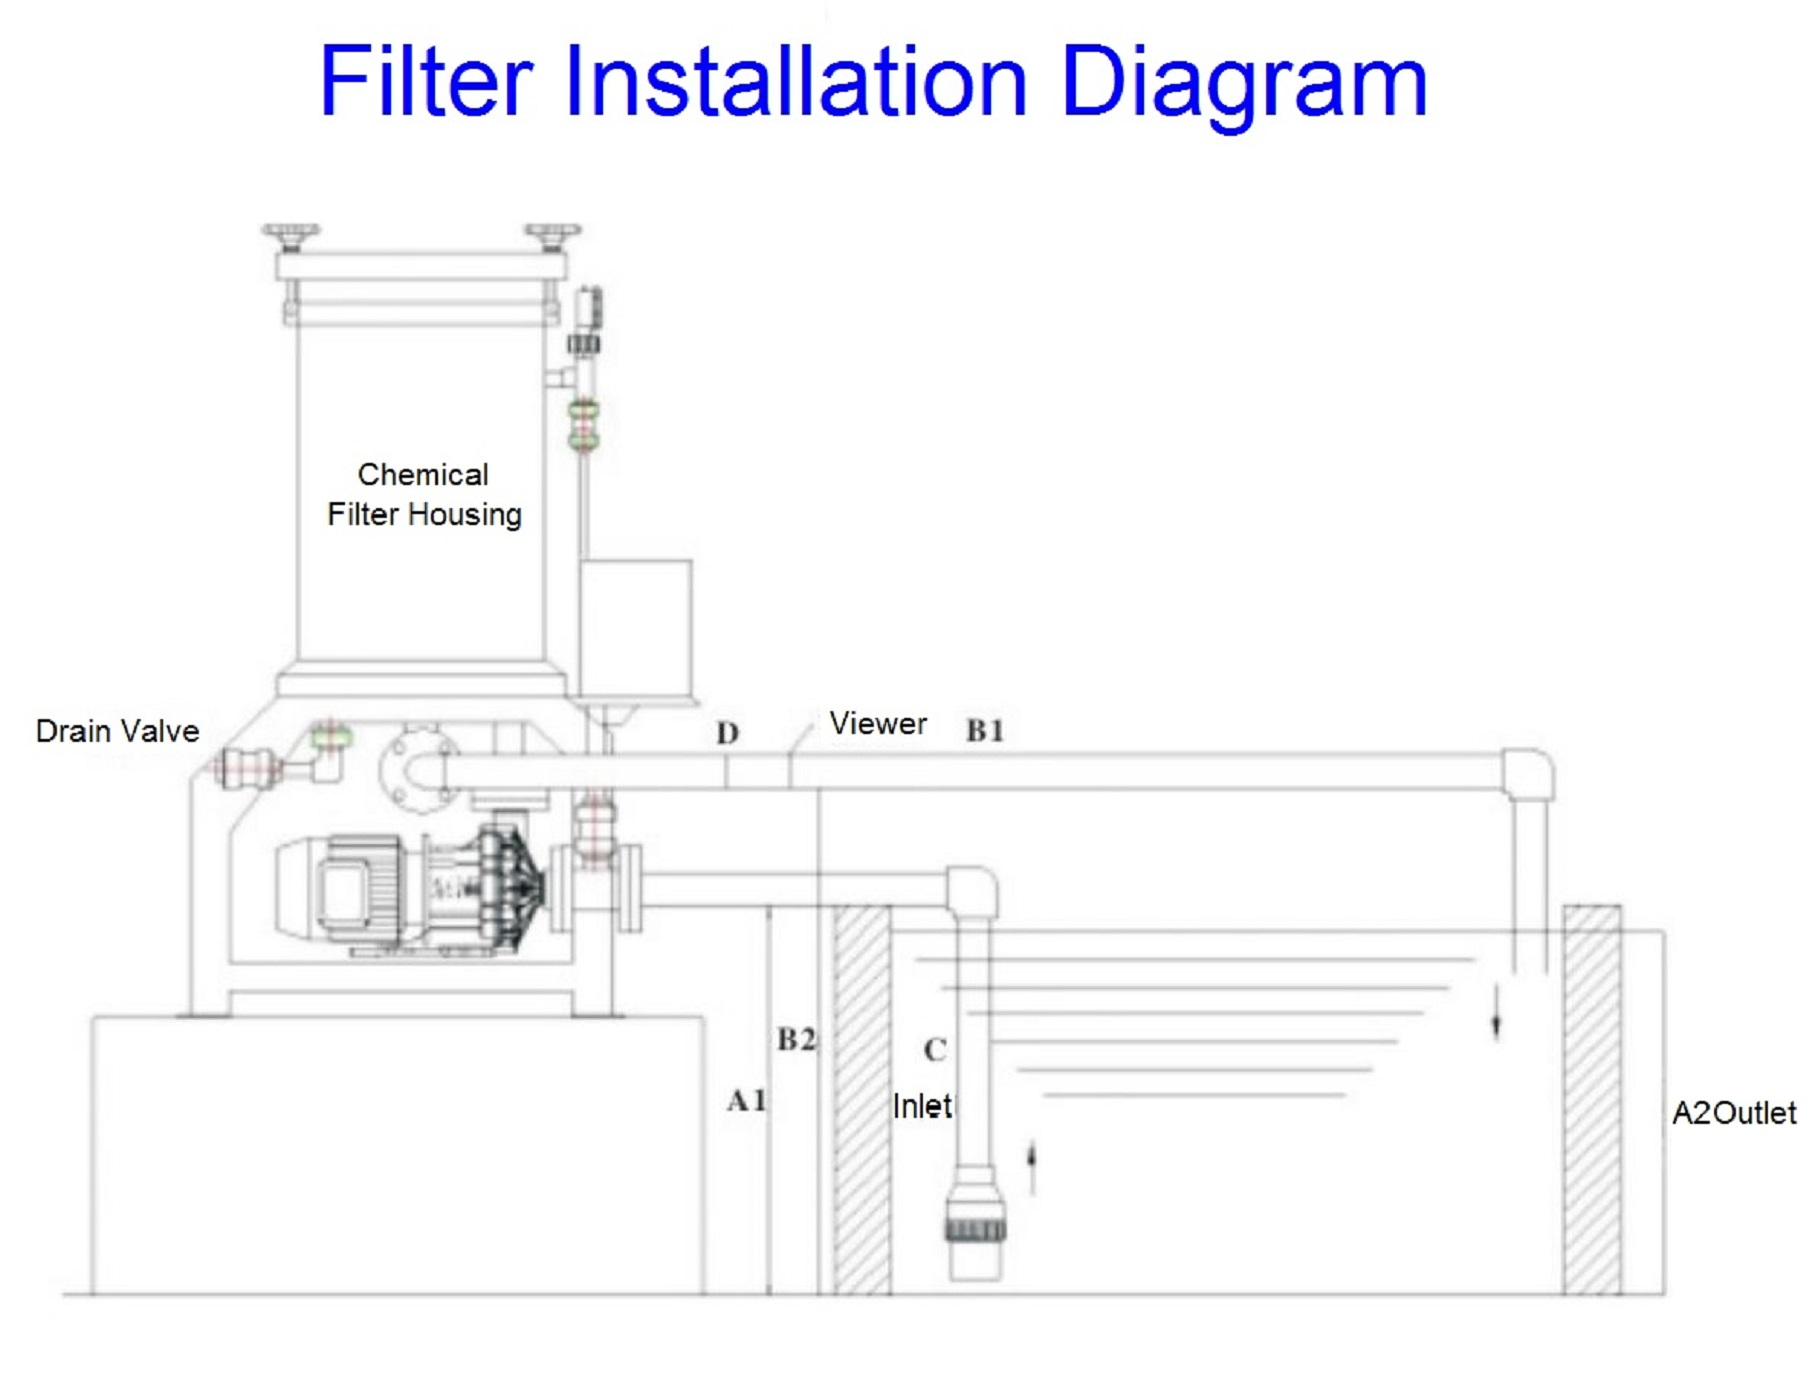 Assembly Instruction Drawing